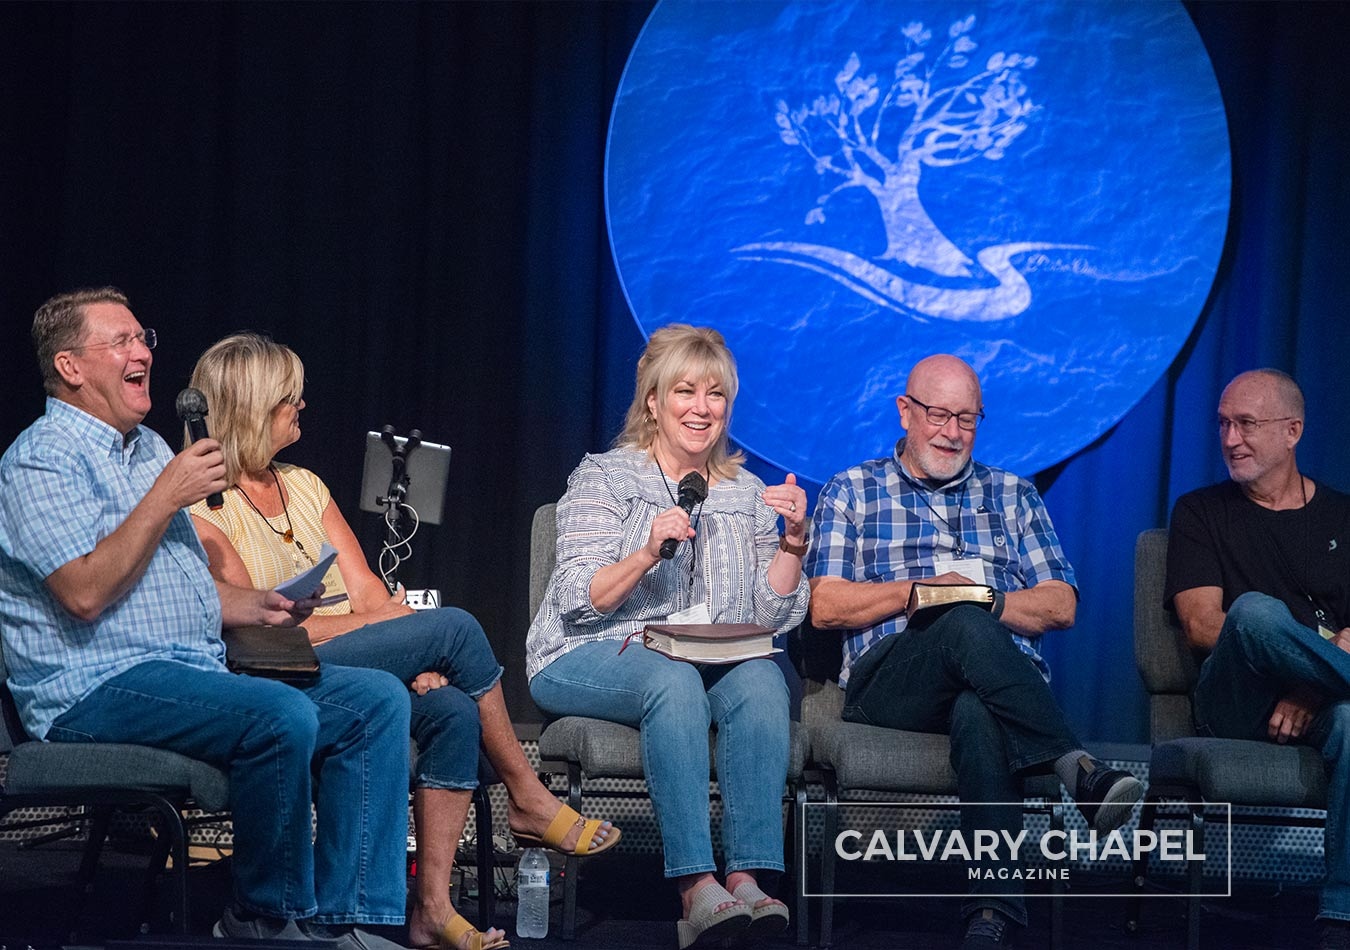 Pastors and Wives Panel Discussion